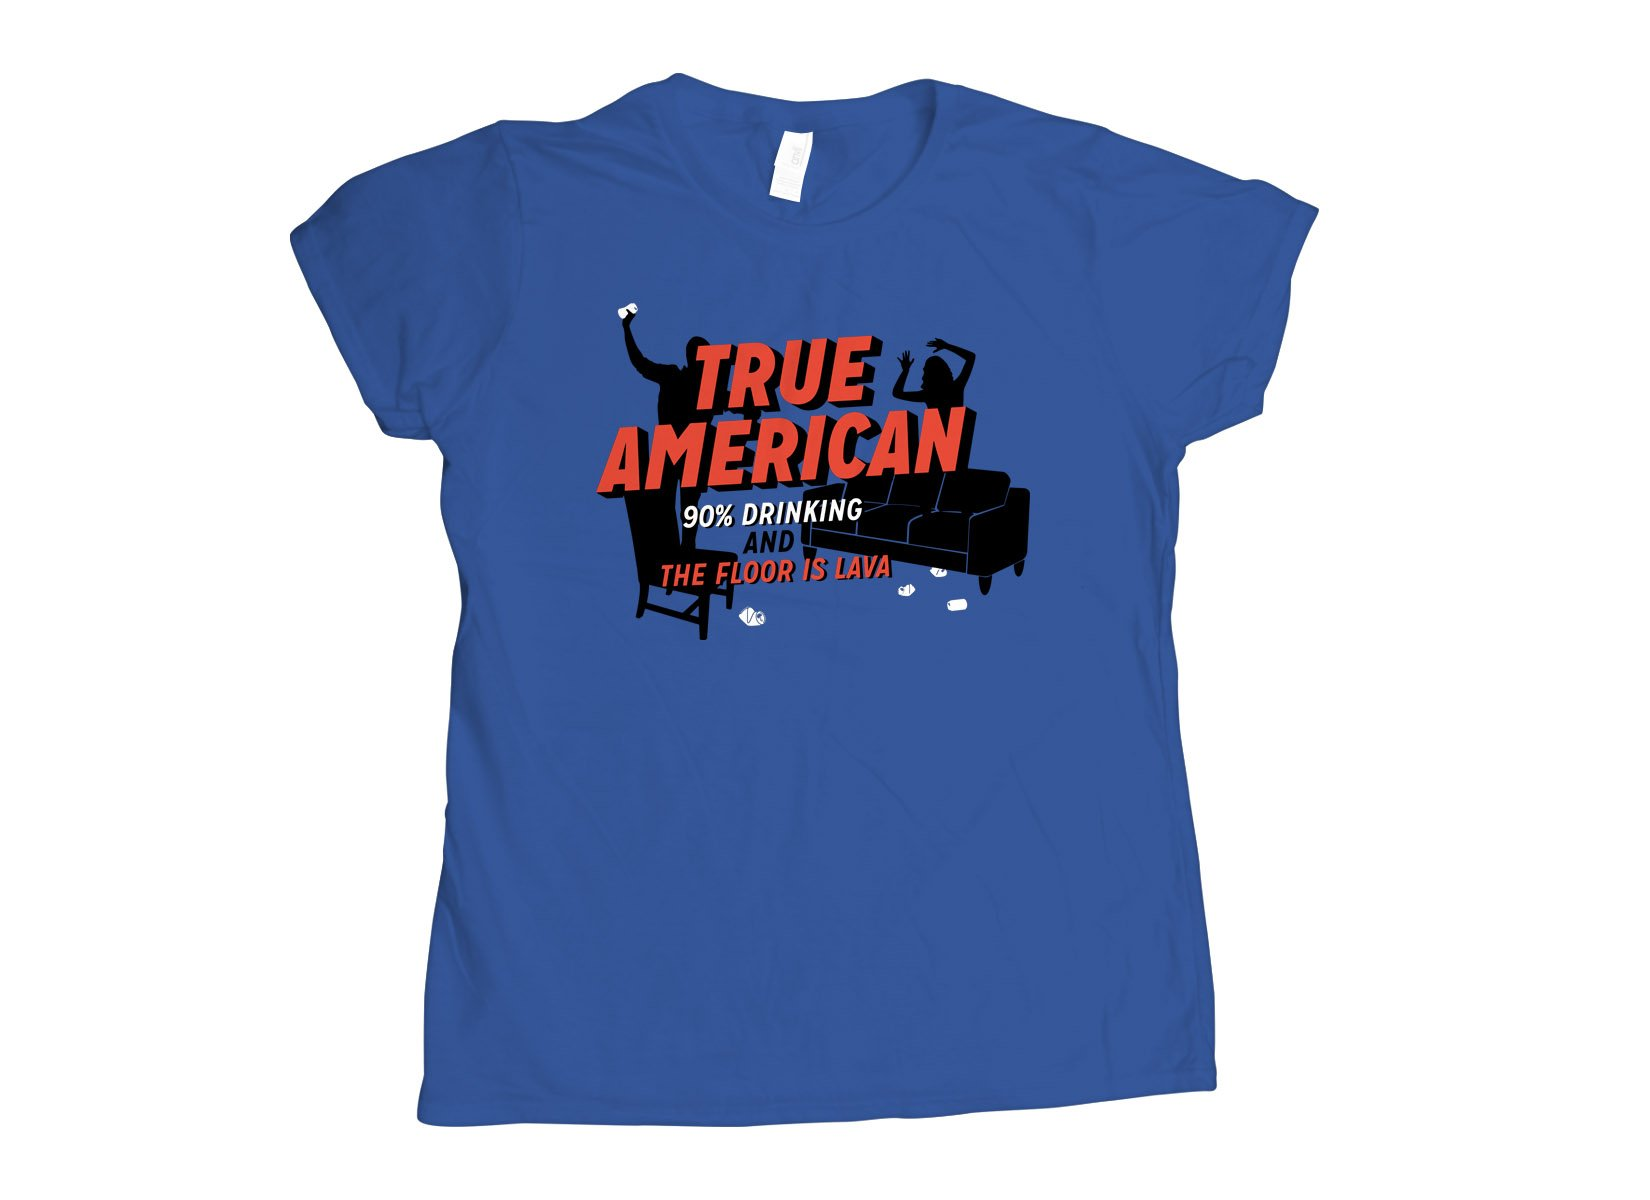 True American on Womens T-Shirt